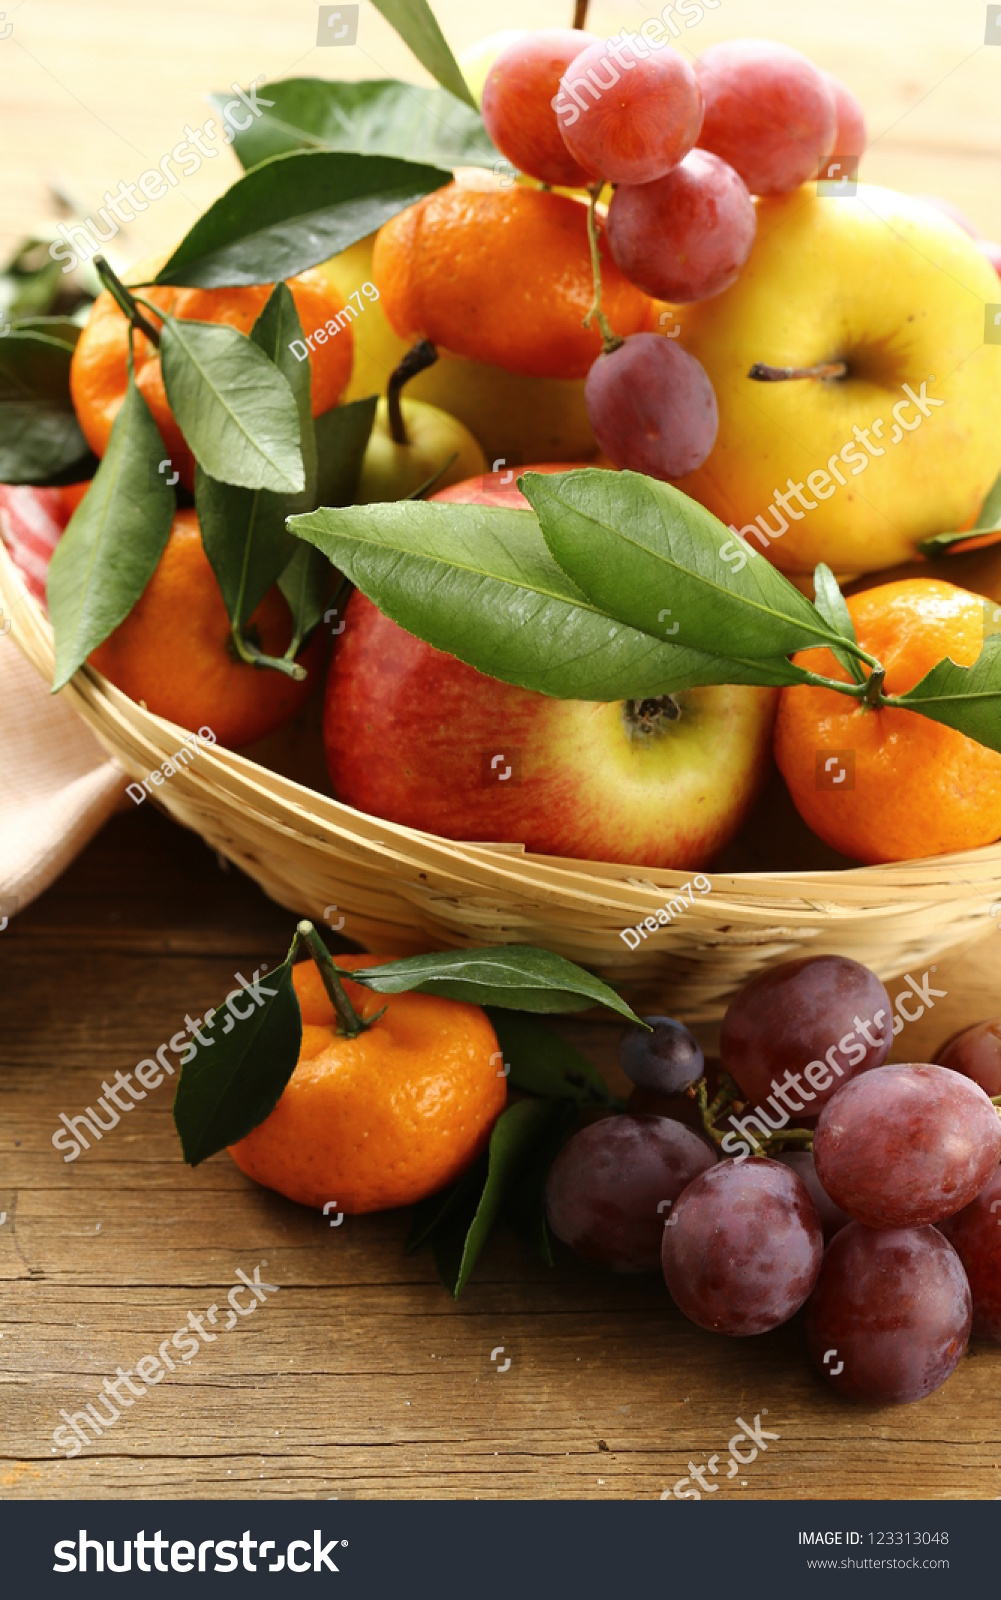 Various Autumn Fruits (Pears, Apples, Mandarin And Grapes) Stock Photo ...